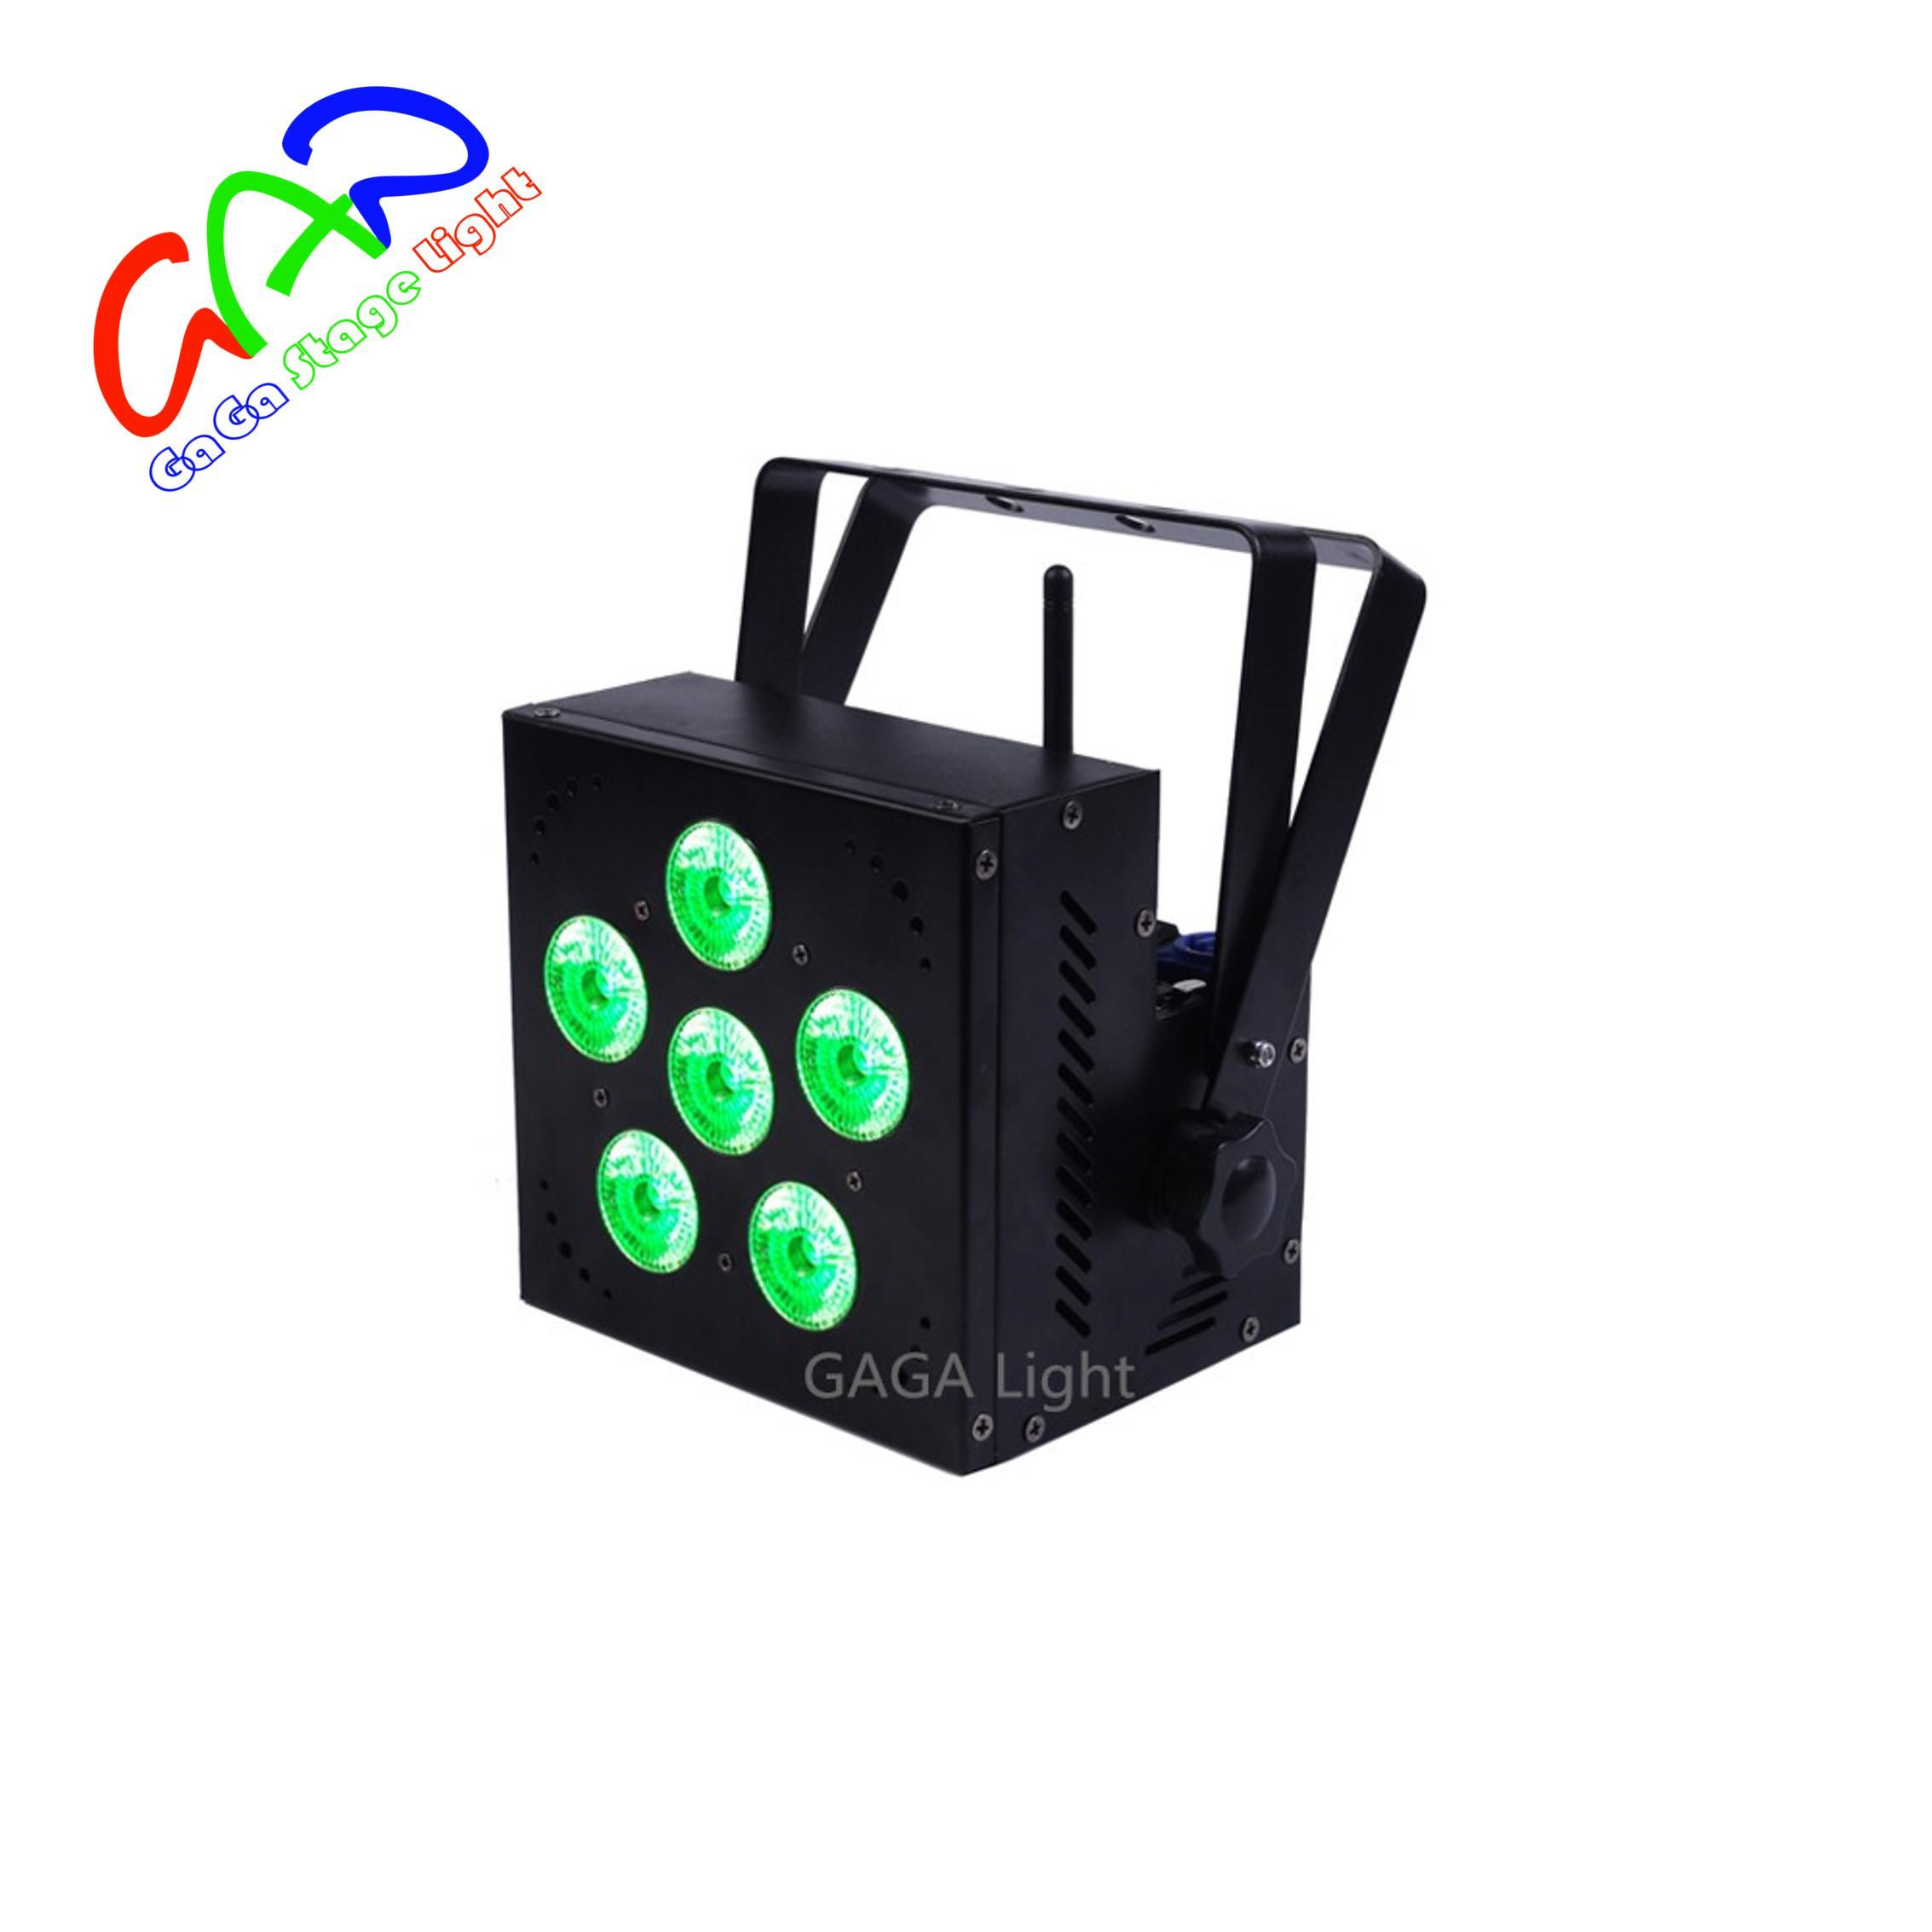 6*15w 5in1 wireless and battery powered light BATTERY & WIRELESS FLAT PAR with CE certificate can led par light